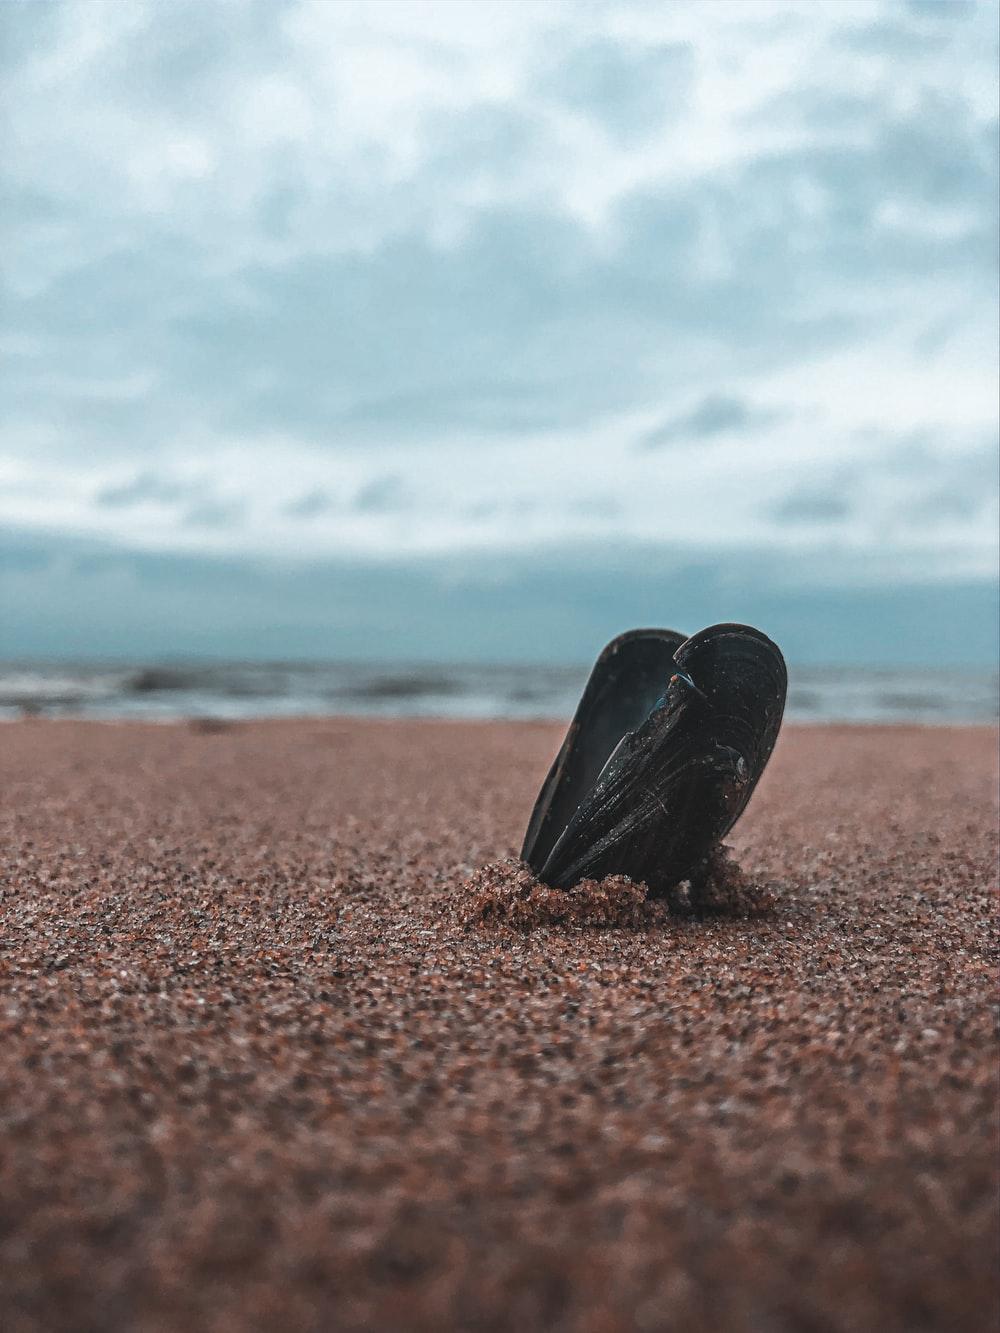 black rock on brown sand during daytime